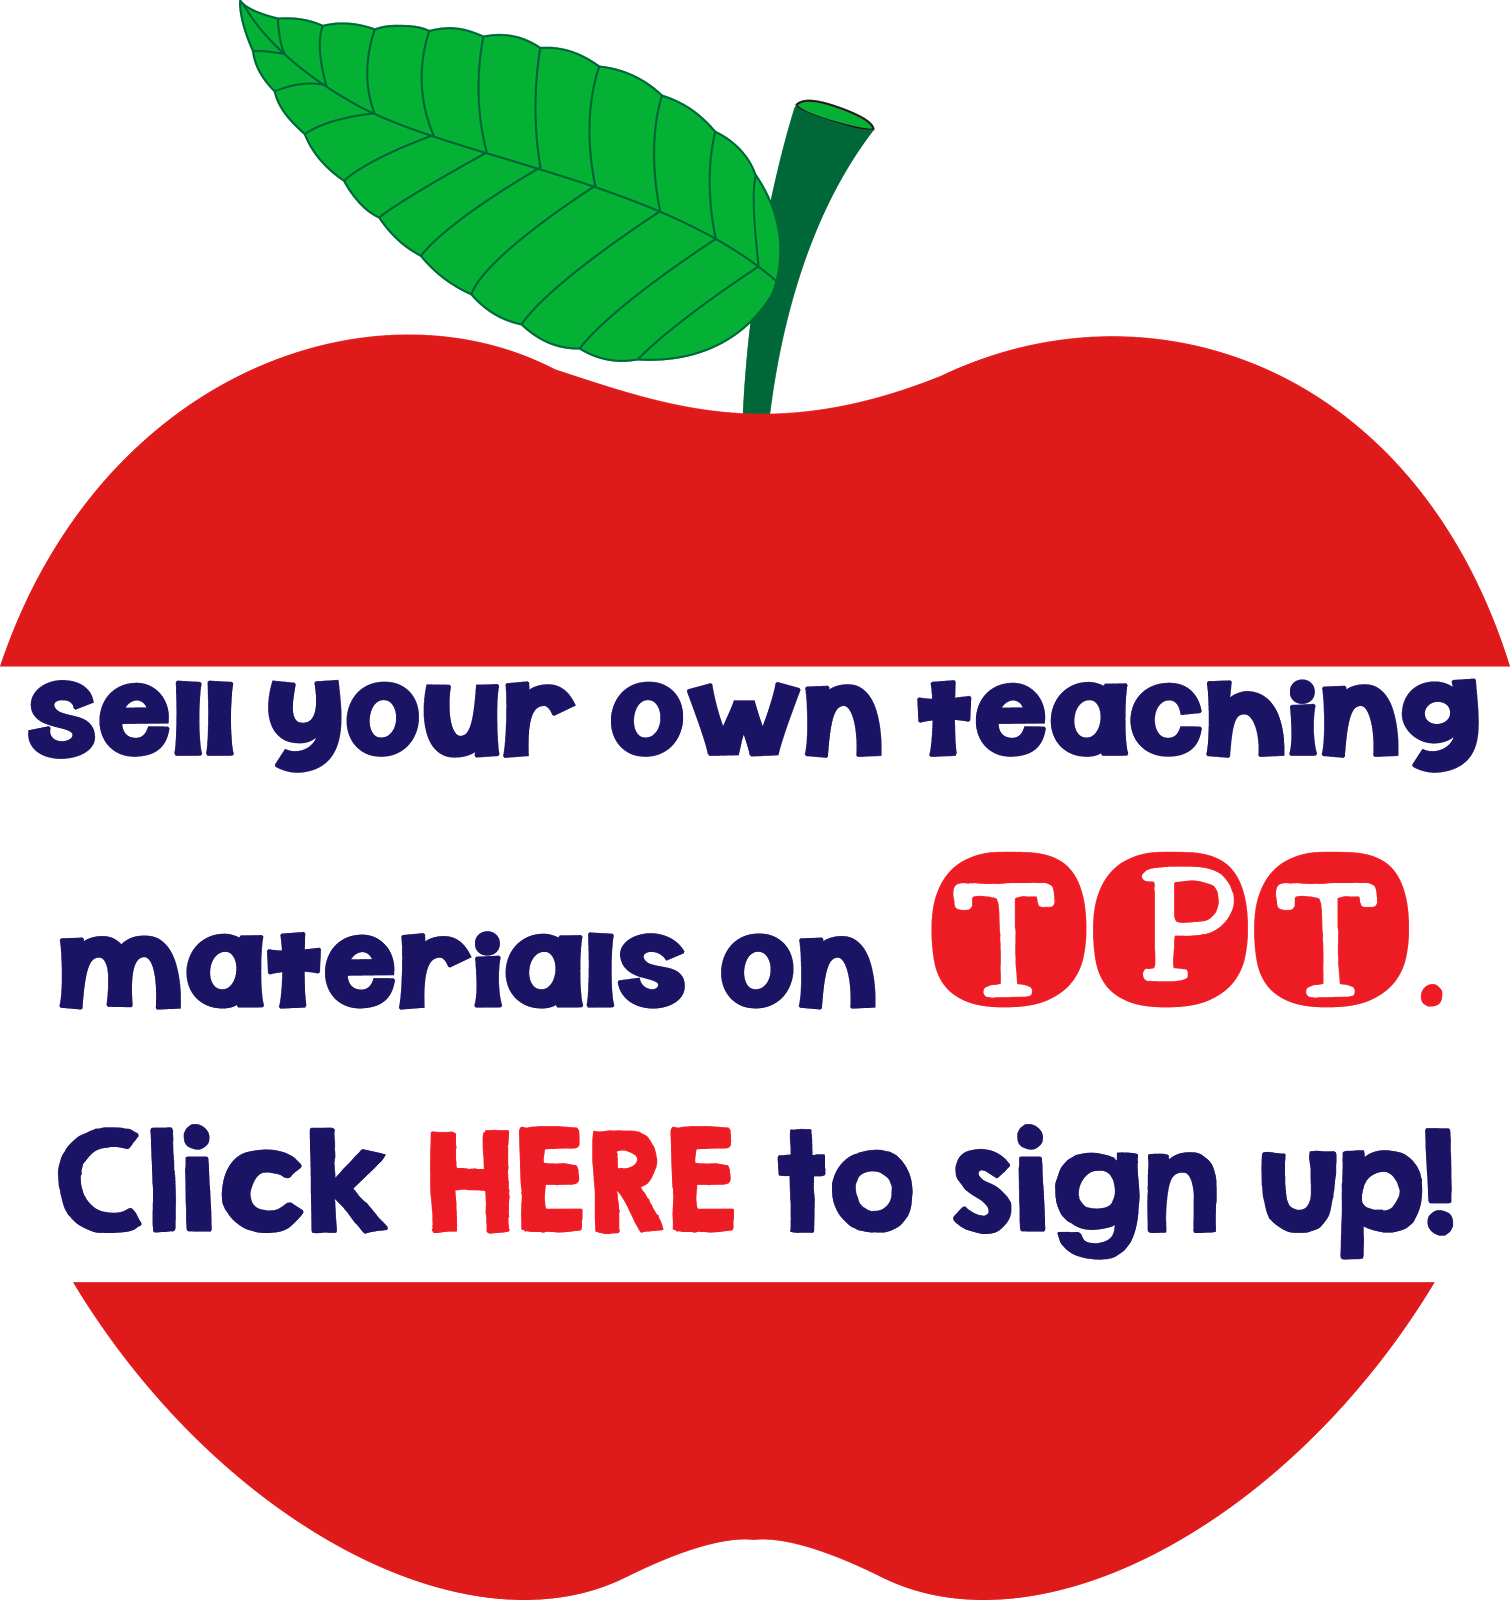 Sign up to be a TPT Seller!